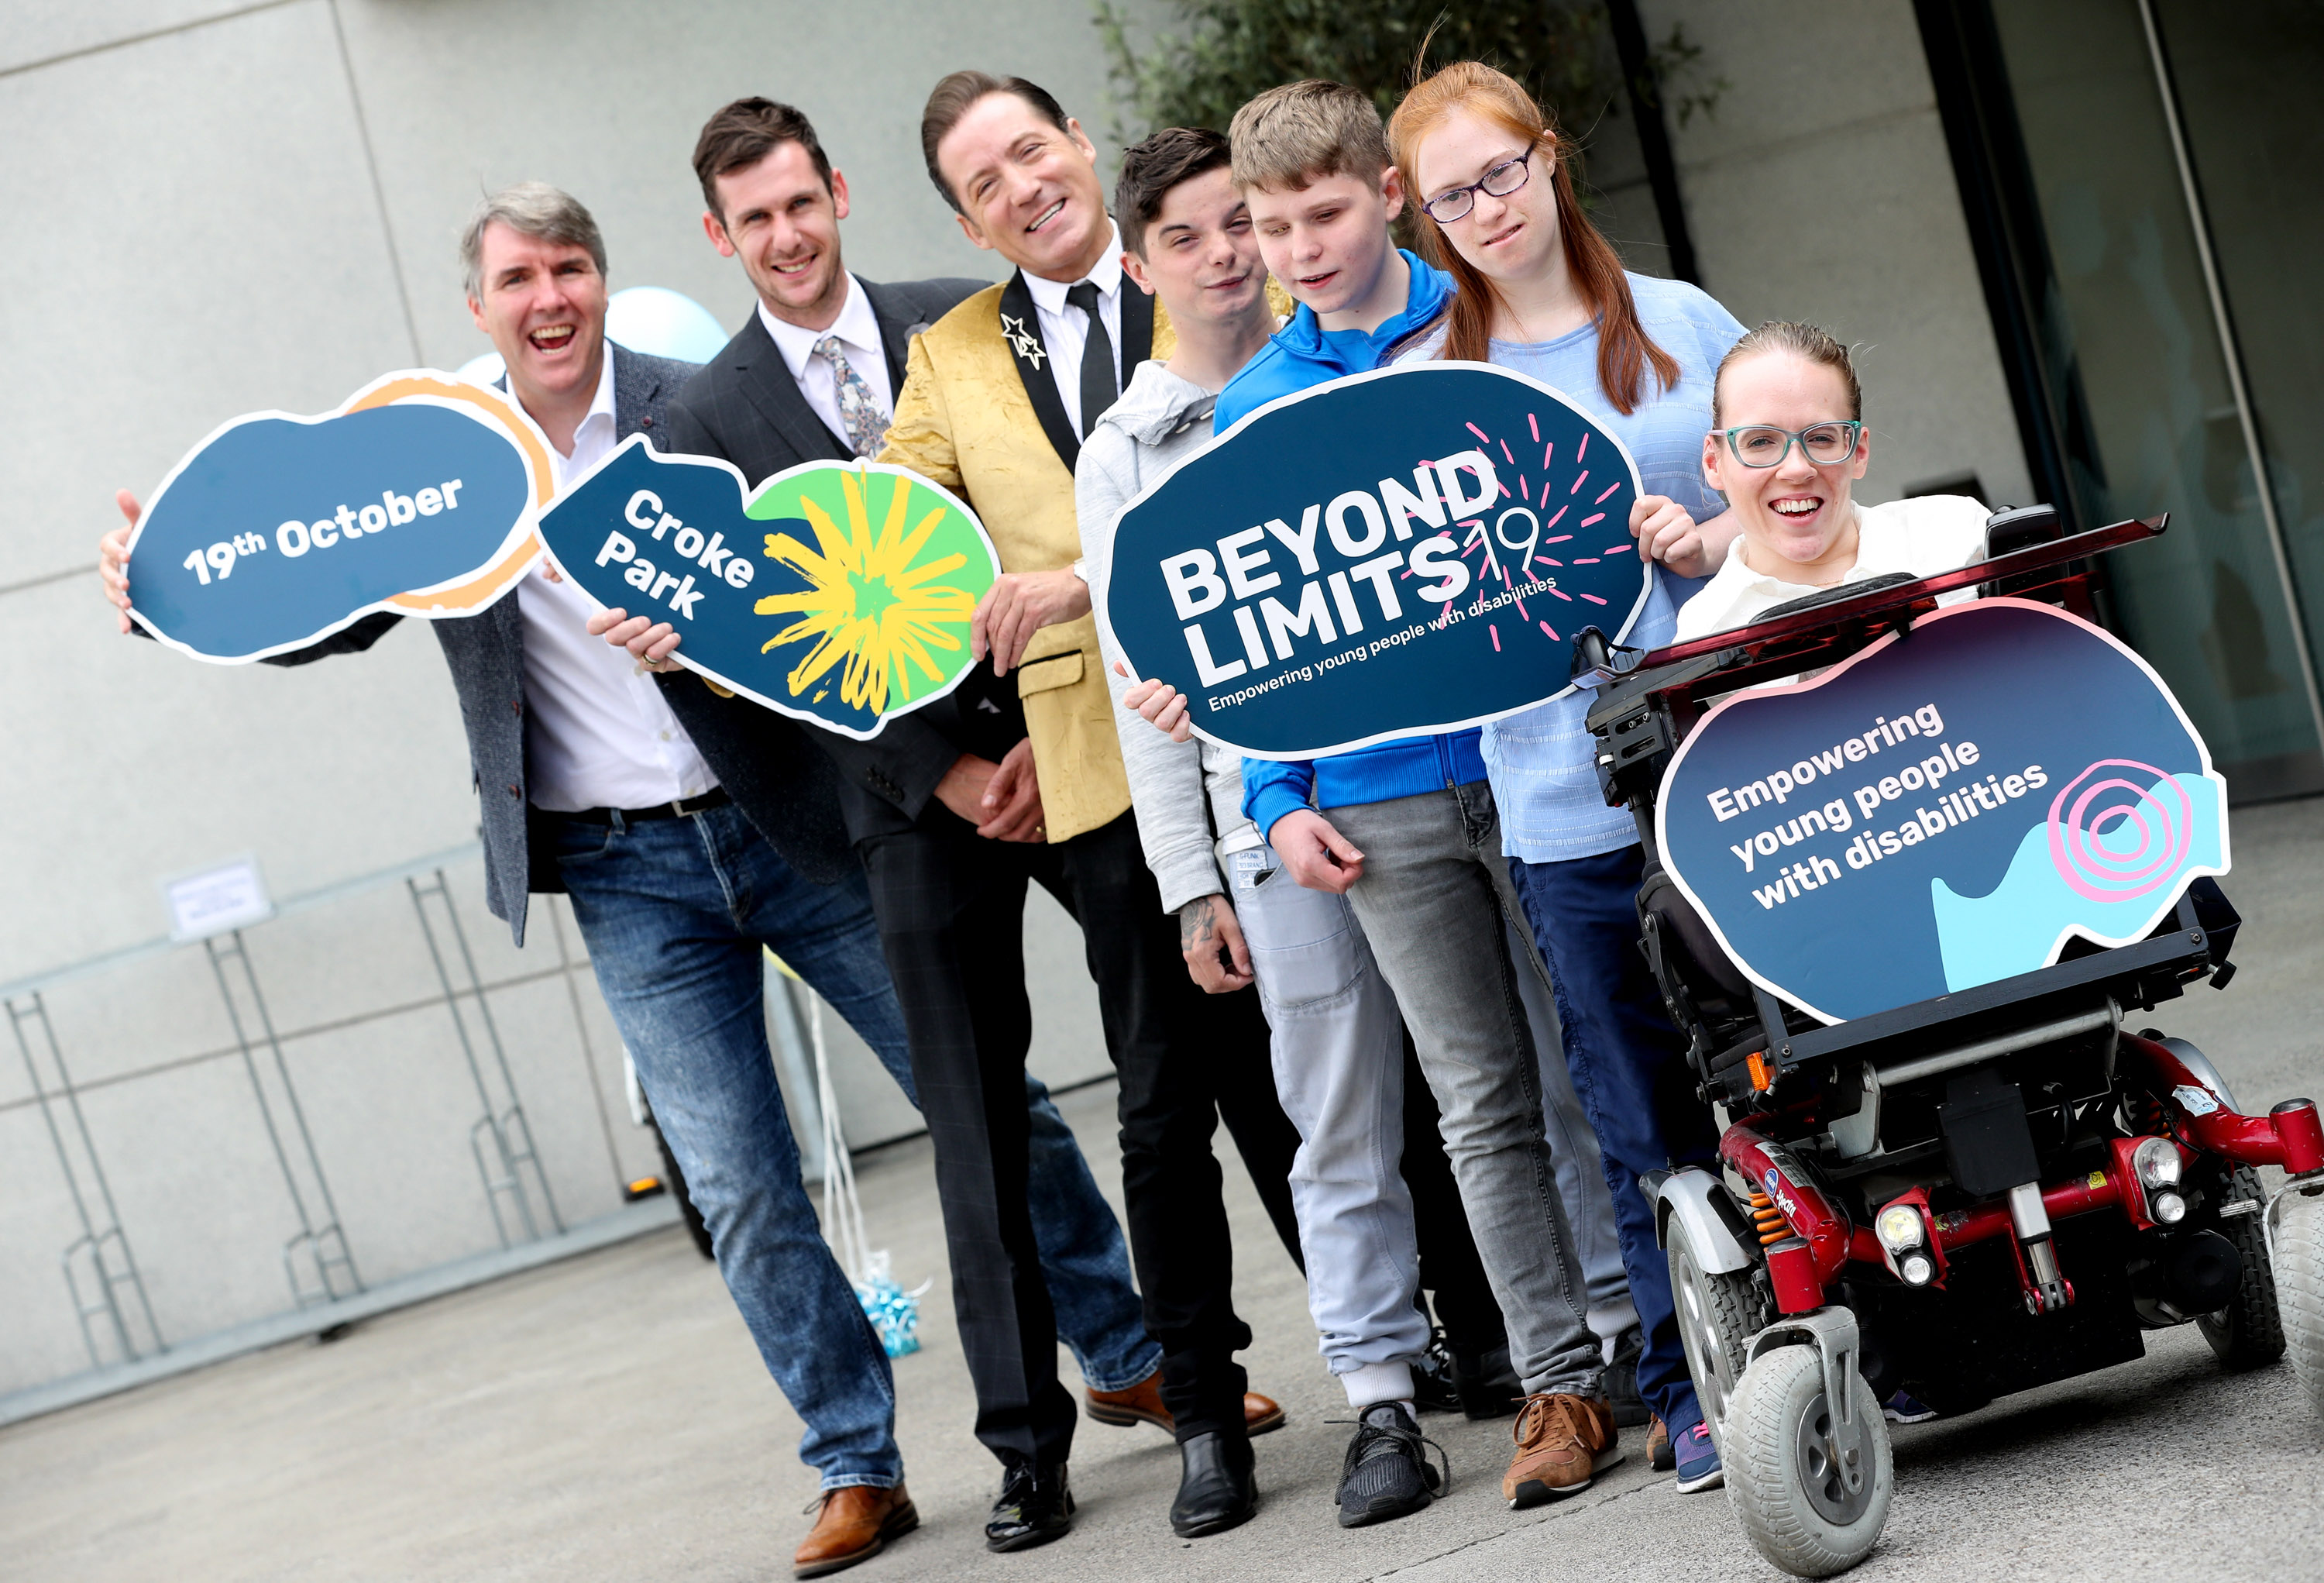 Offaly teenagers take to the stage at Beyond Limits, a summit for young people with disabilities